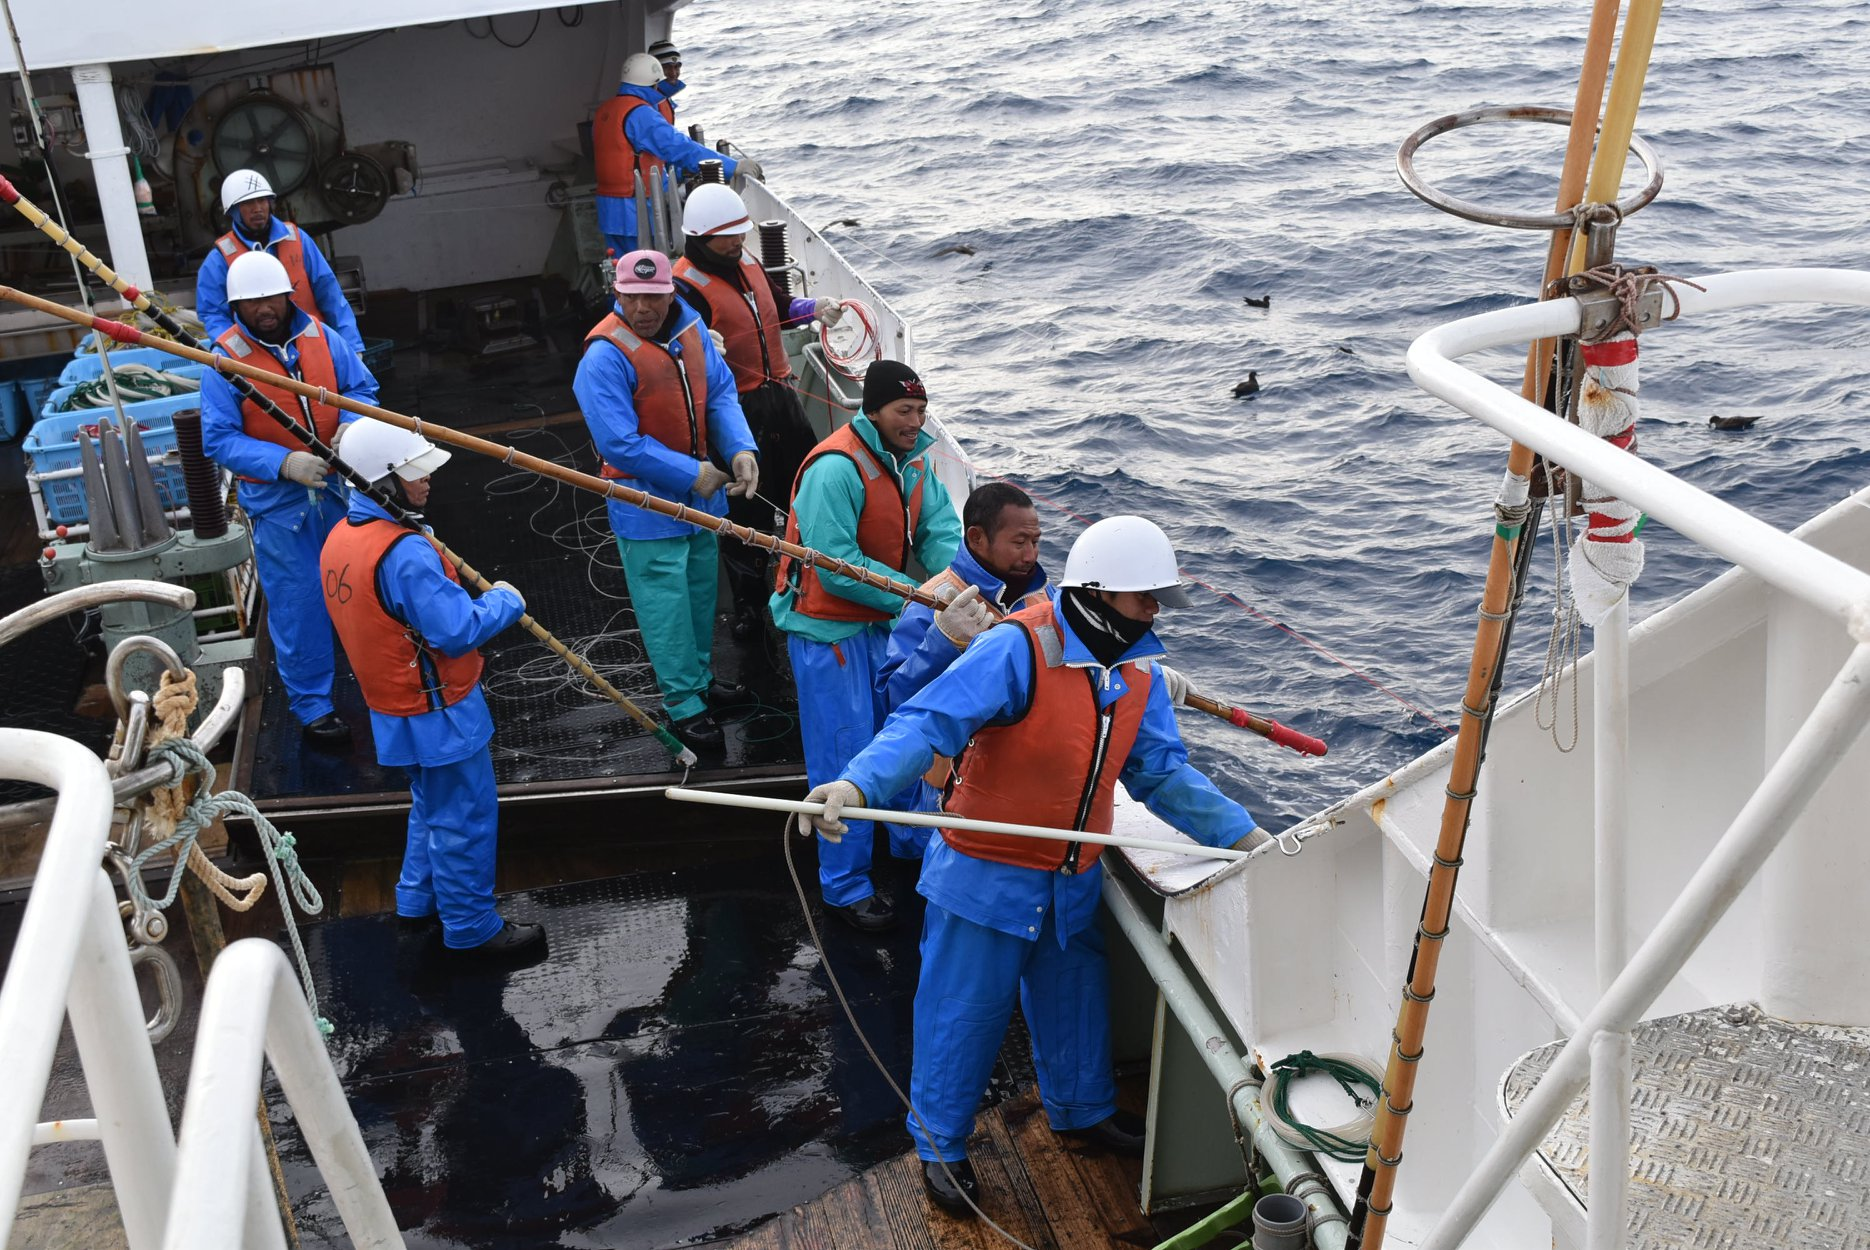 Picture of nine fishermen on a ship dressed in red and blue uniforms holding a rope